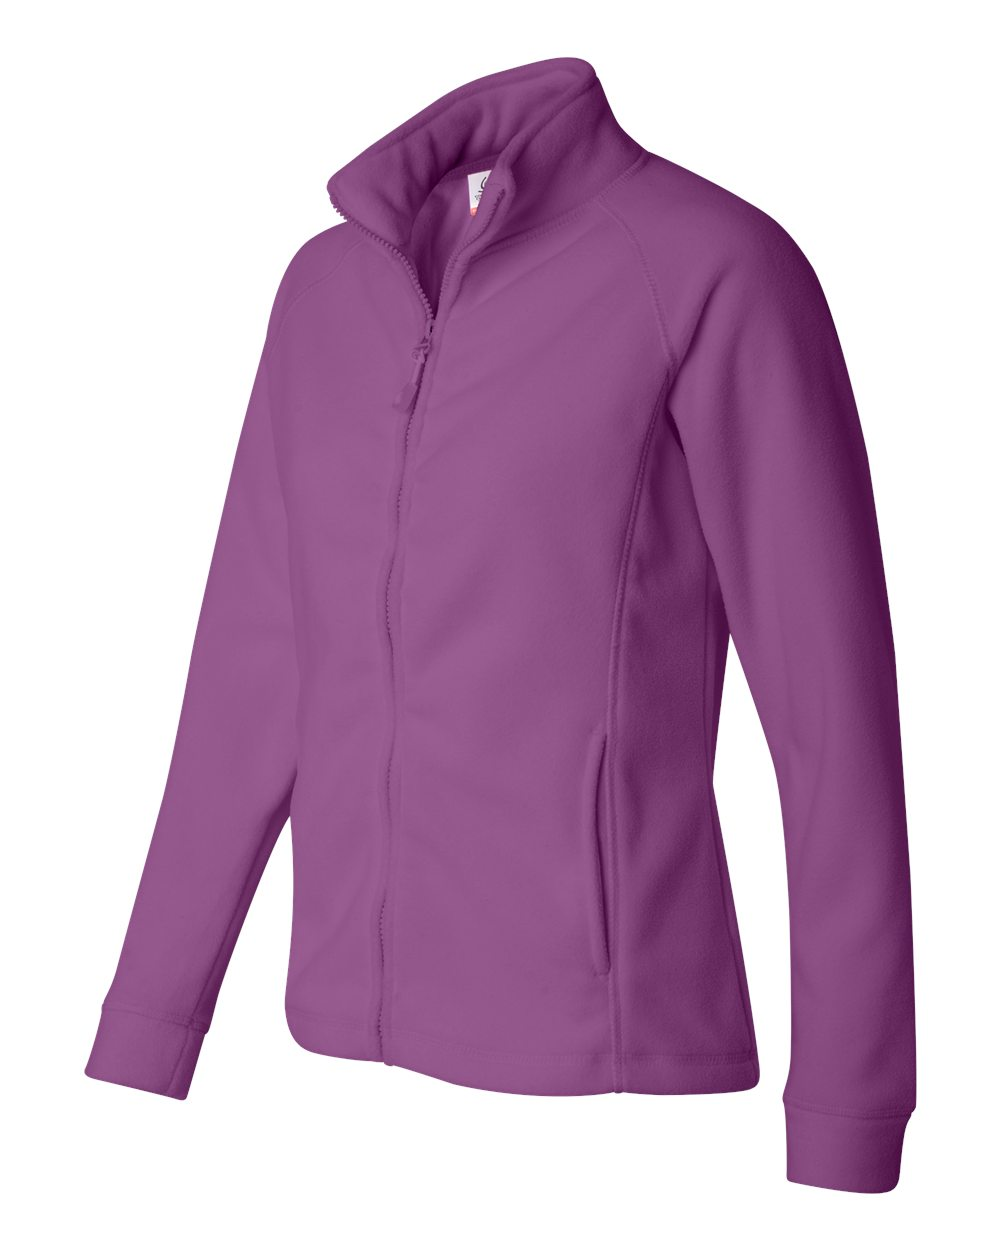 Colorado Clothing 4000 - Ladies' Heavyweight Full-Zip Microfleece Jacket